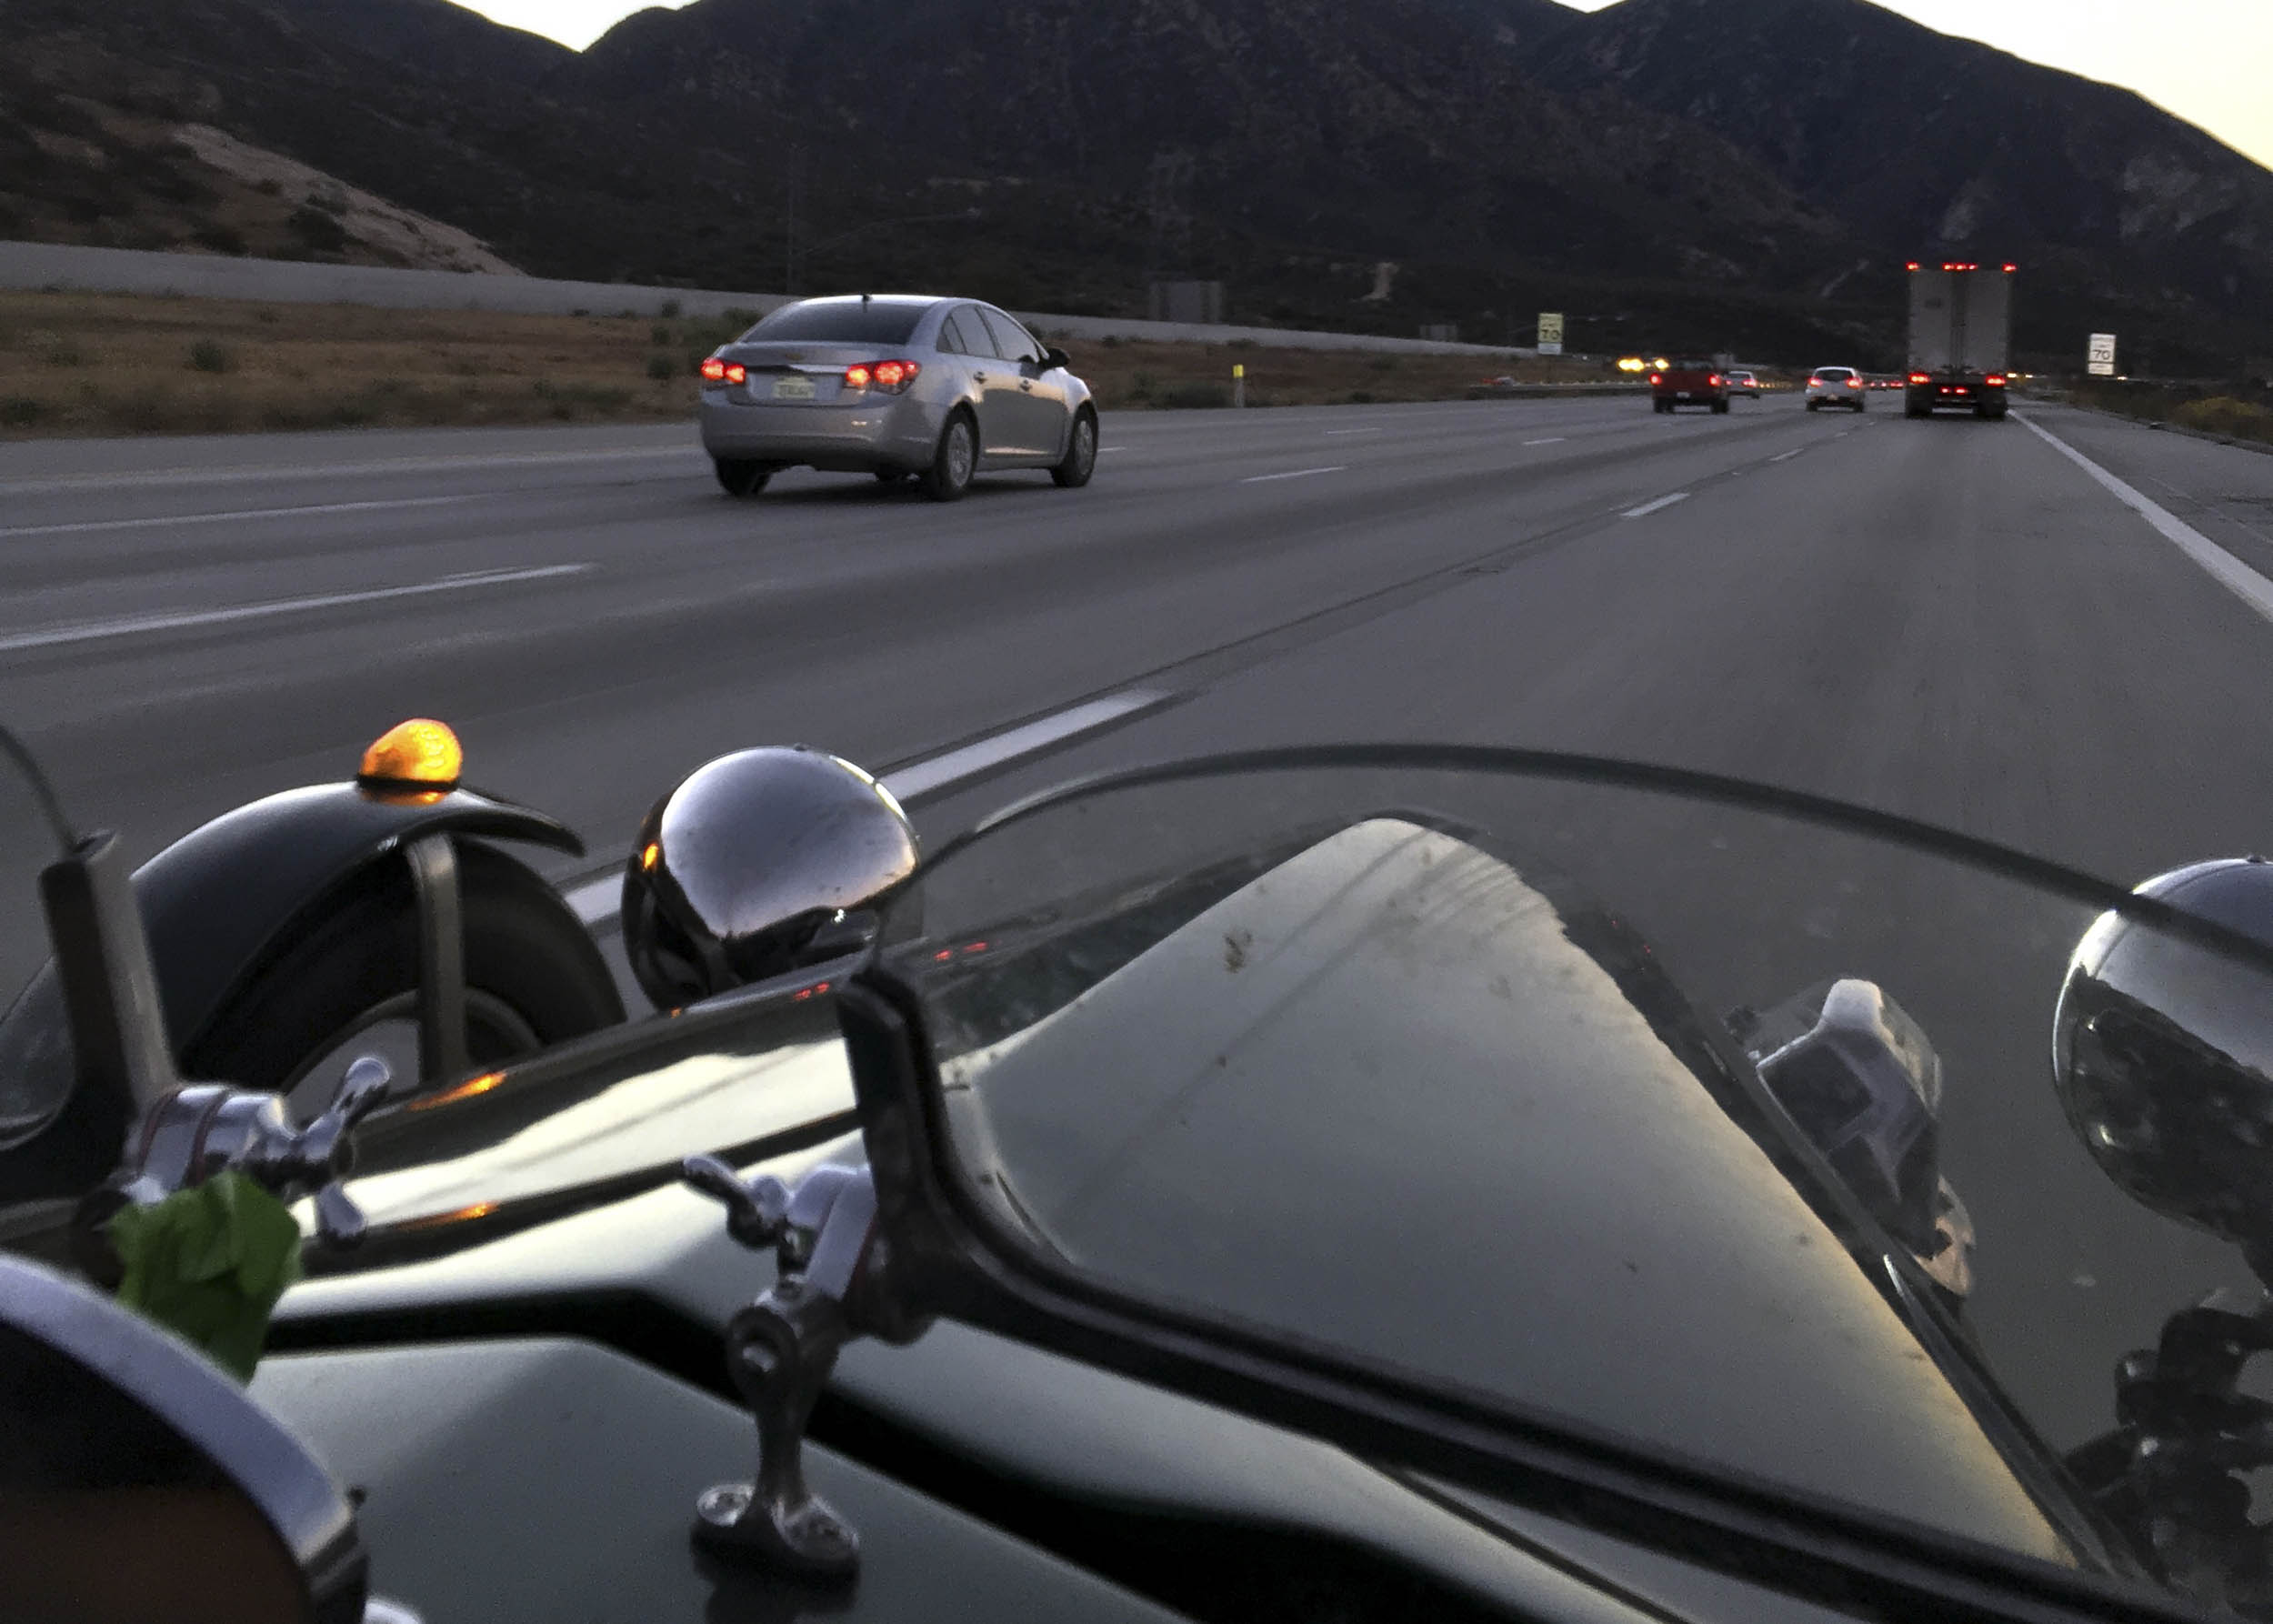 Driving cross country in an open cockpit three-wheeled kit car